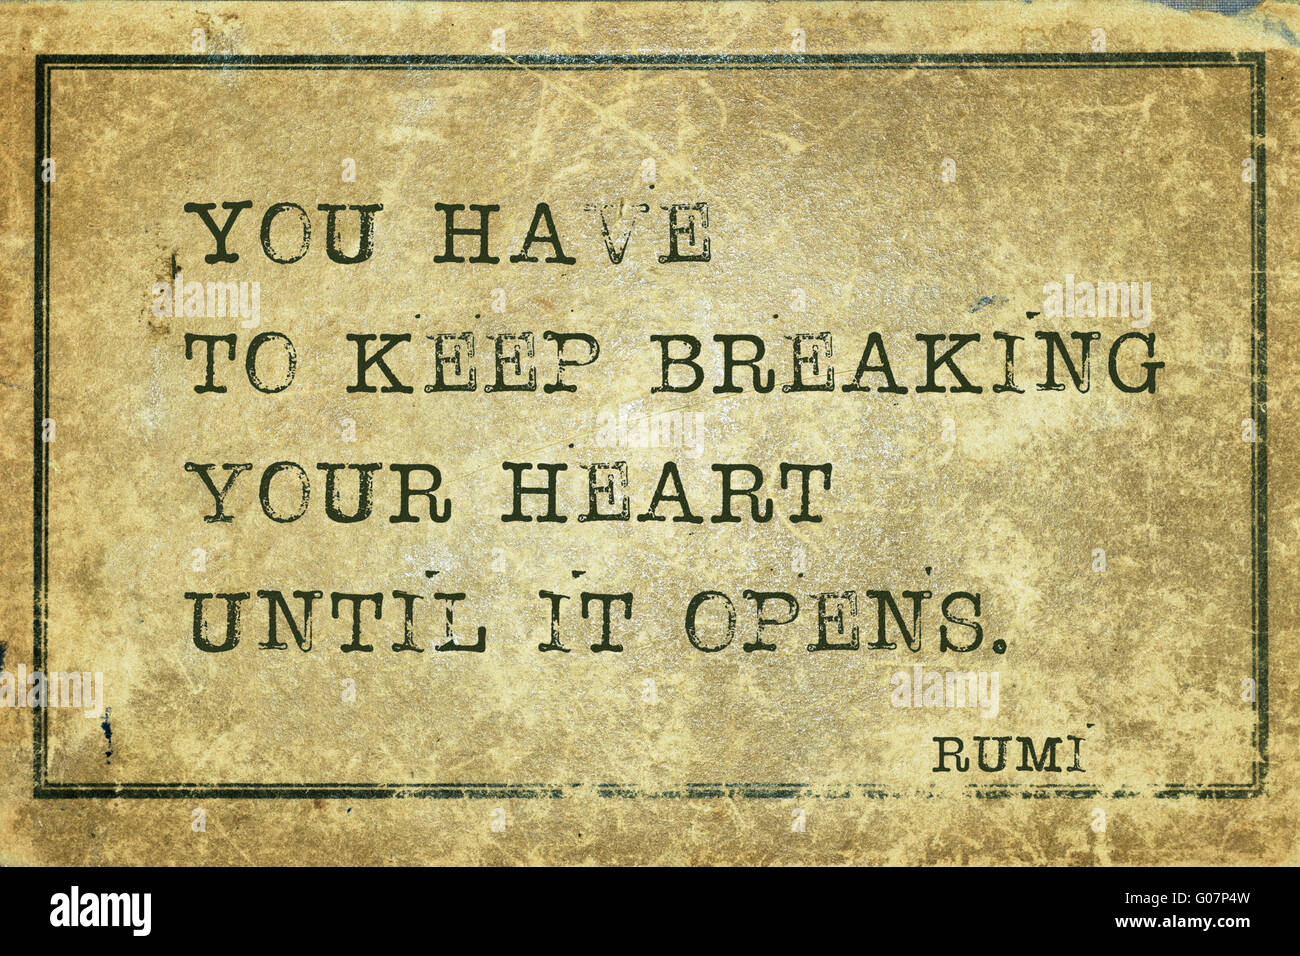 You Have To Keep Breaking Your Heart Ancient Persian Poet And